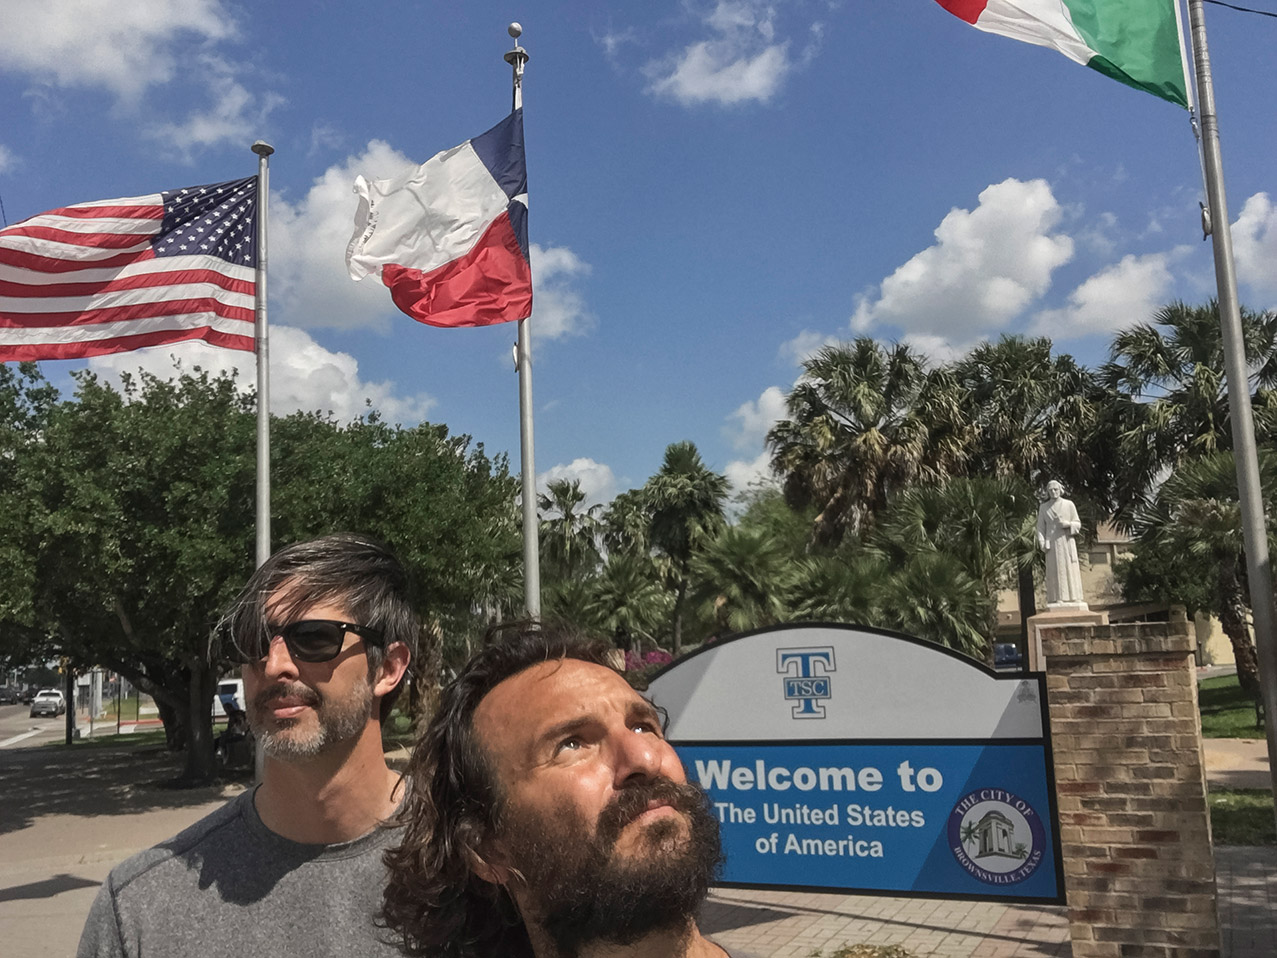 AP photographer Rodrigo Abd, front, and writer Christopher Sherman pose for a selfie in Brownsville, Texas, at the eastern end of the U.S. - Mexico border, March 21, 2017. (AP Photo/Rodrigo Abd)